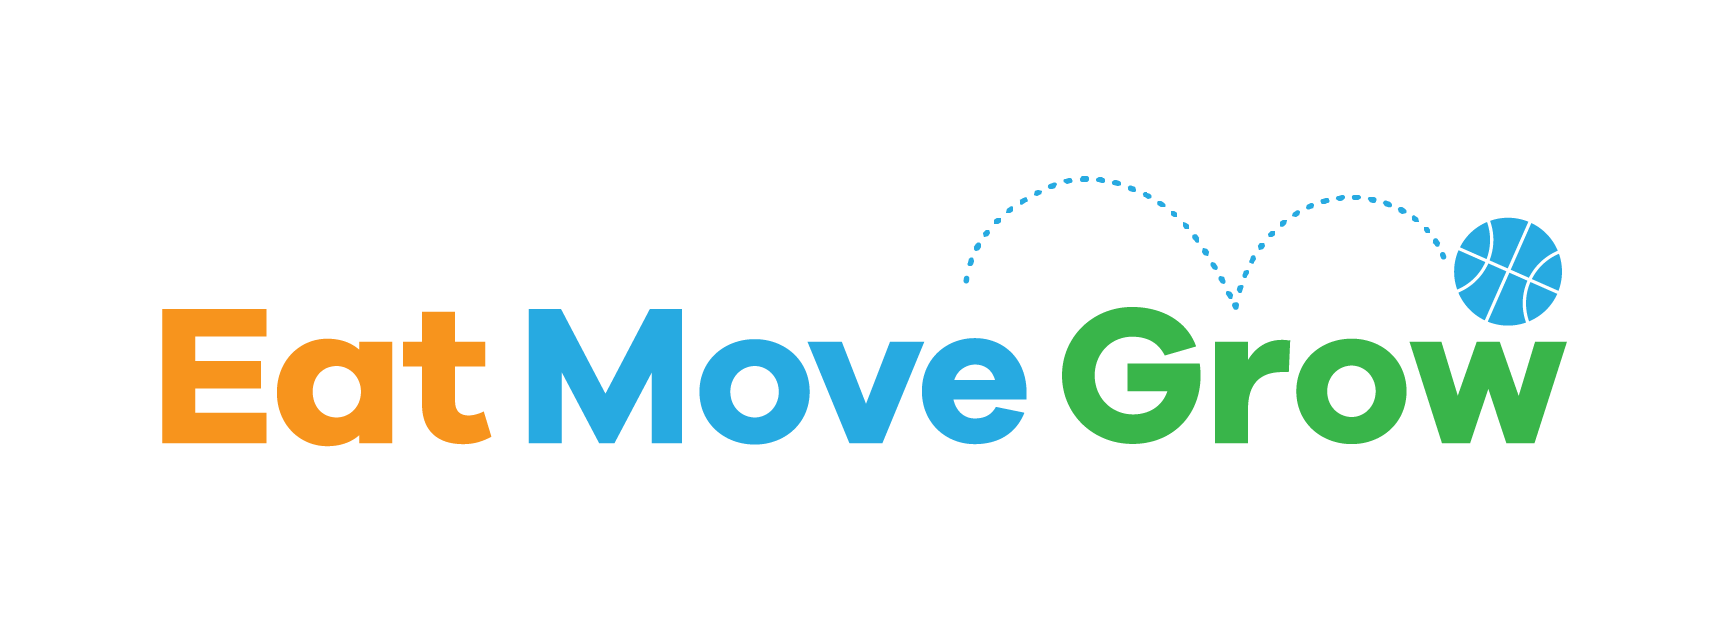 Eat Move Grow Logo